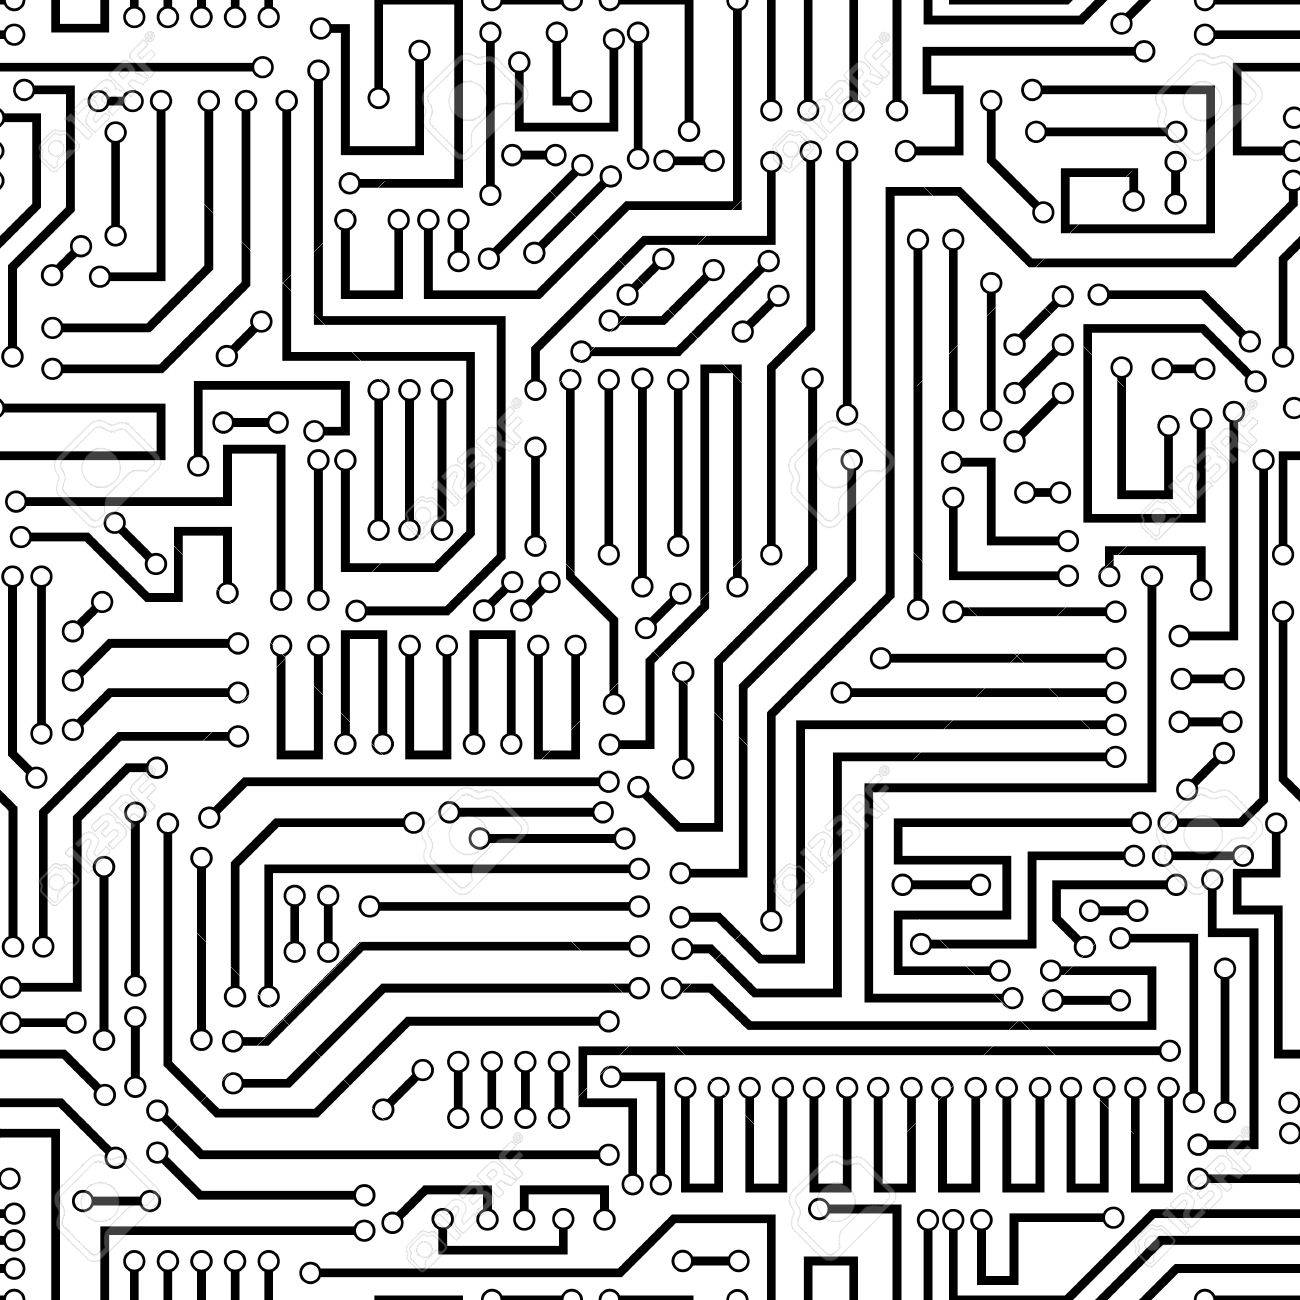 hight resolution of printed circuit texture background seamless black and white seamless printed wiring board background vector illustration